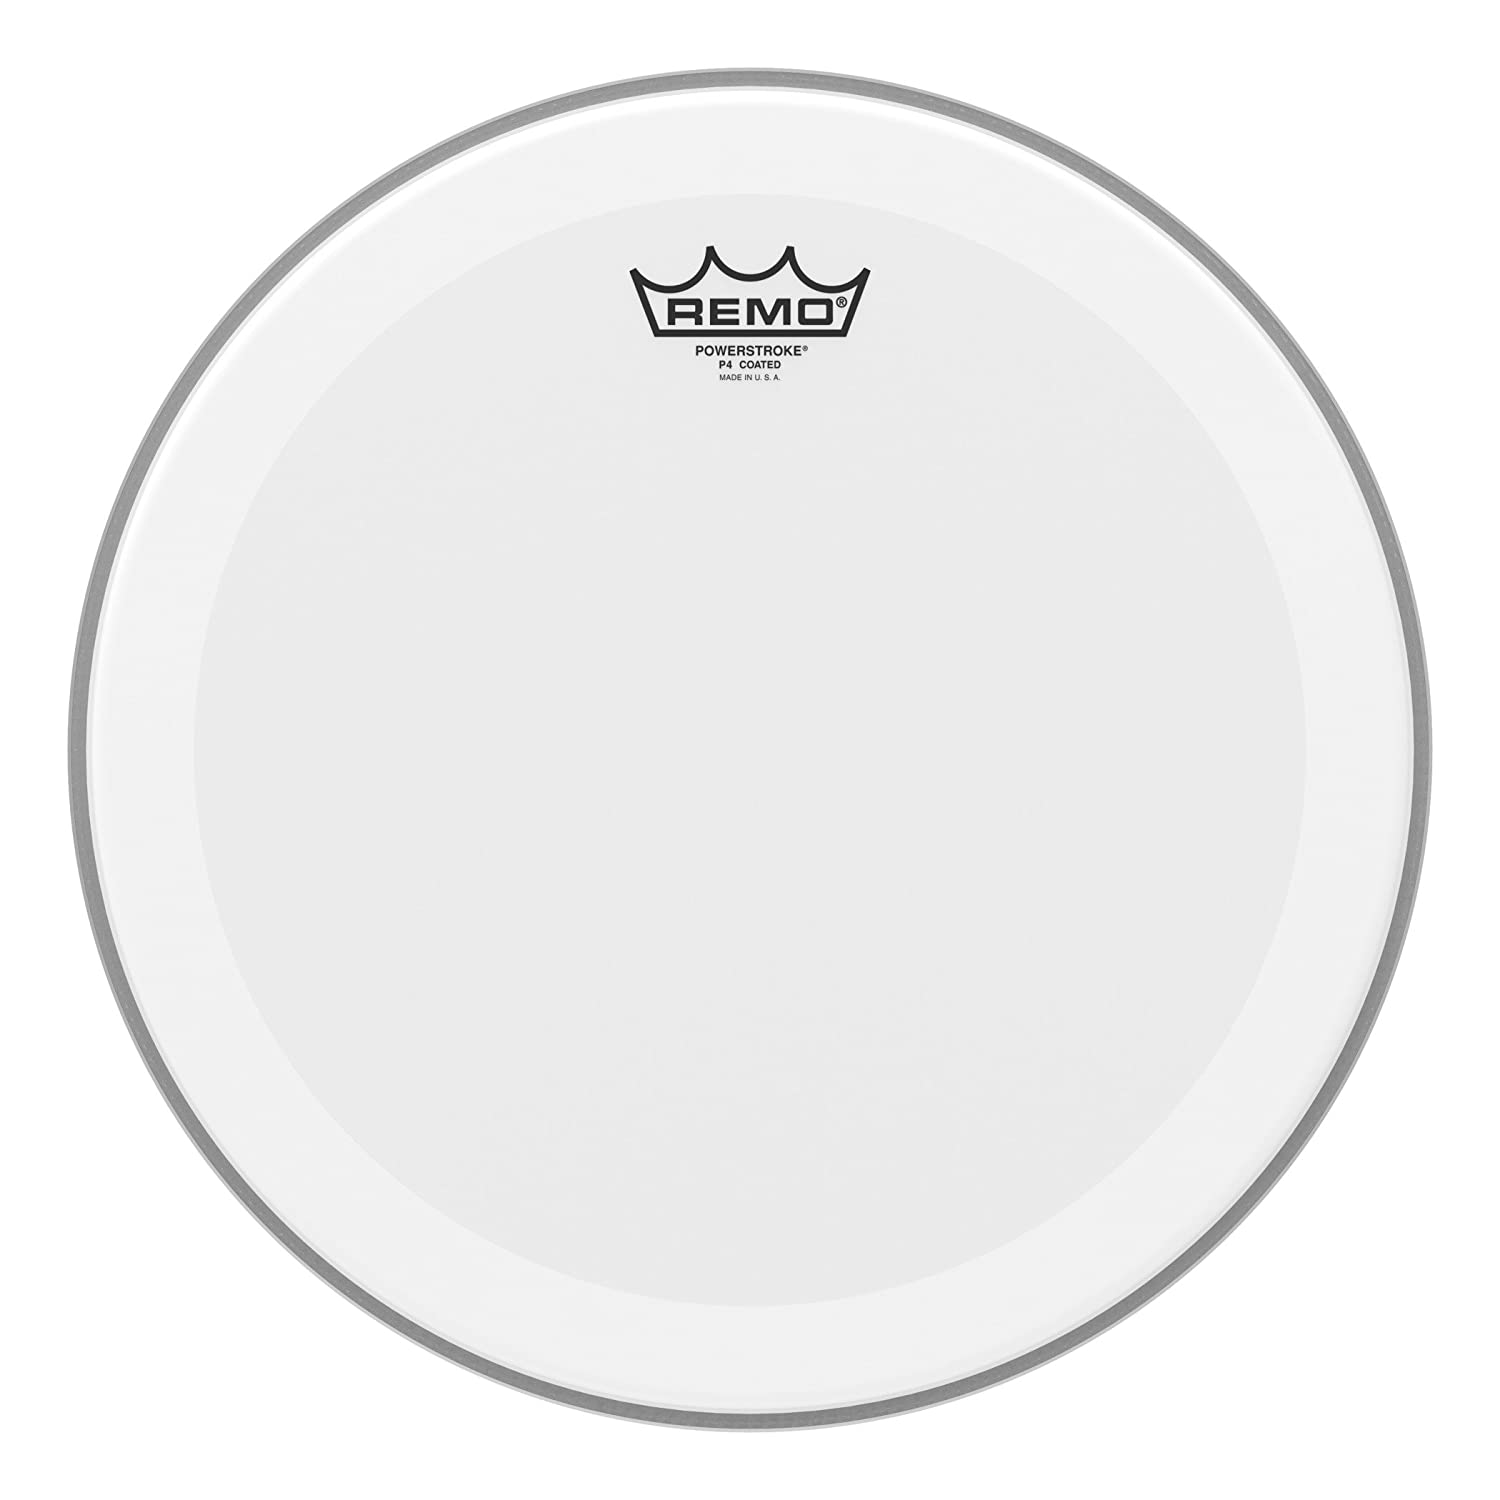 Remo P41322-C2 22-inch Bass Drum Heads Remo Inc.